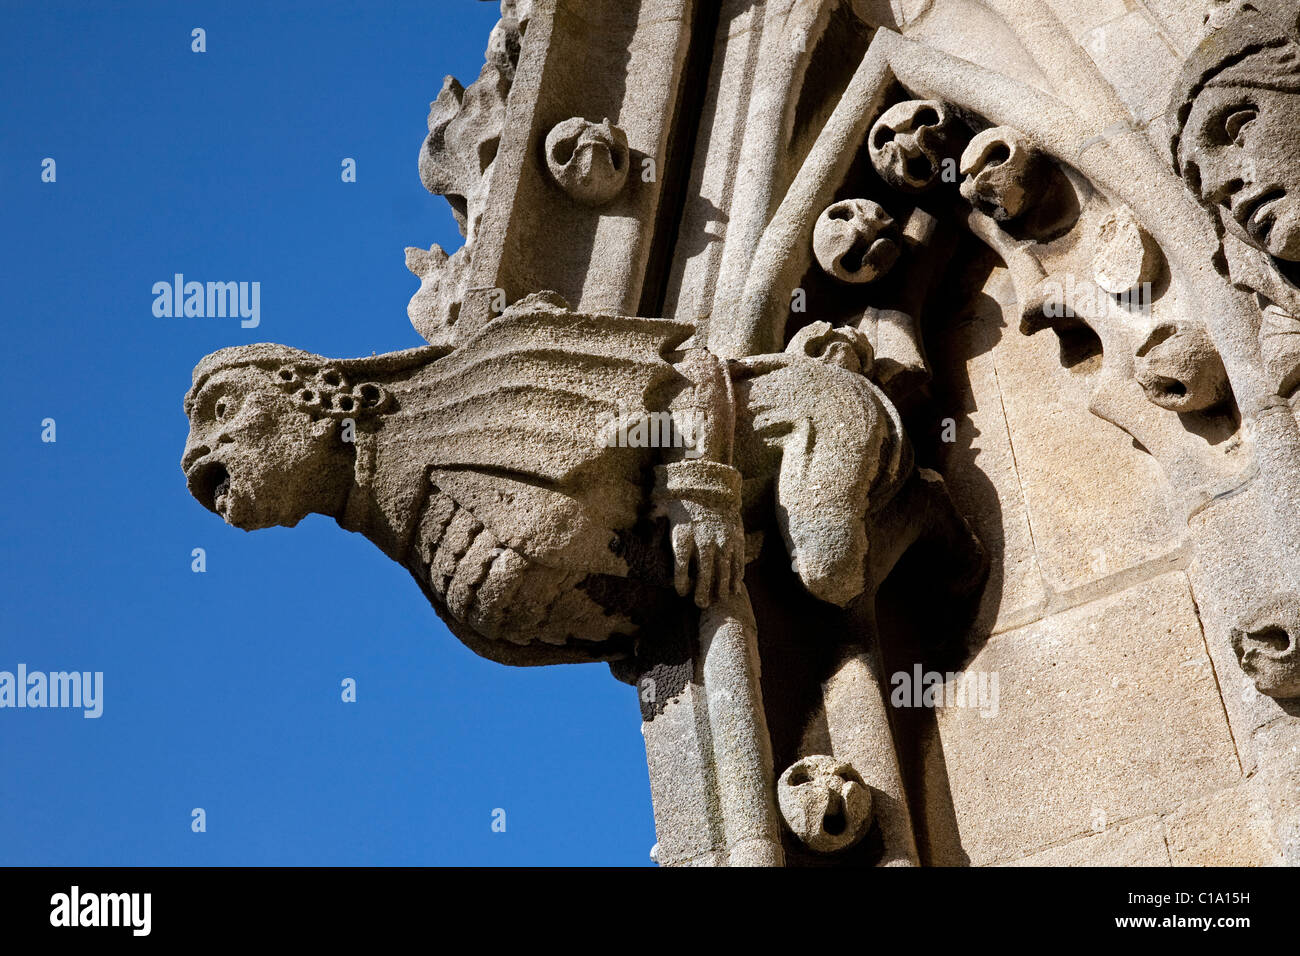 Gargoyle on the tower of St. Mary's / University Church of St Mary the Virgin in Oxford, Oxfordshire, England, - Stock Image